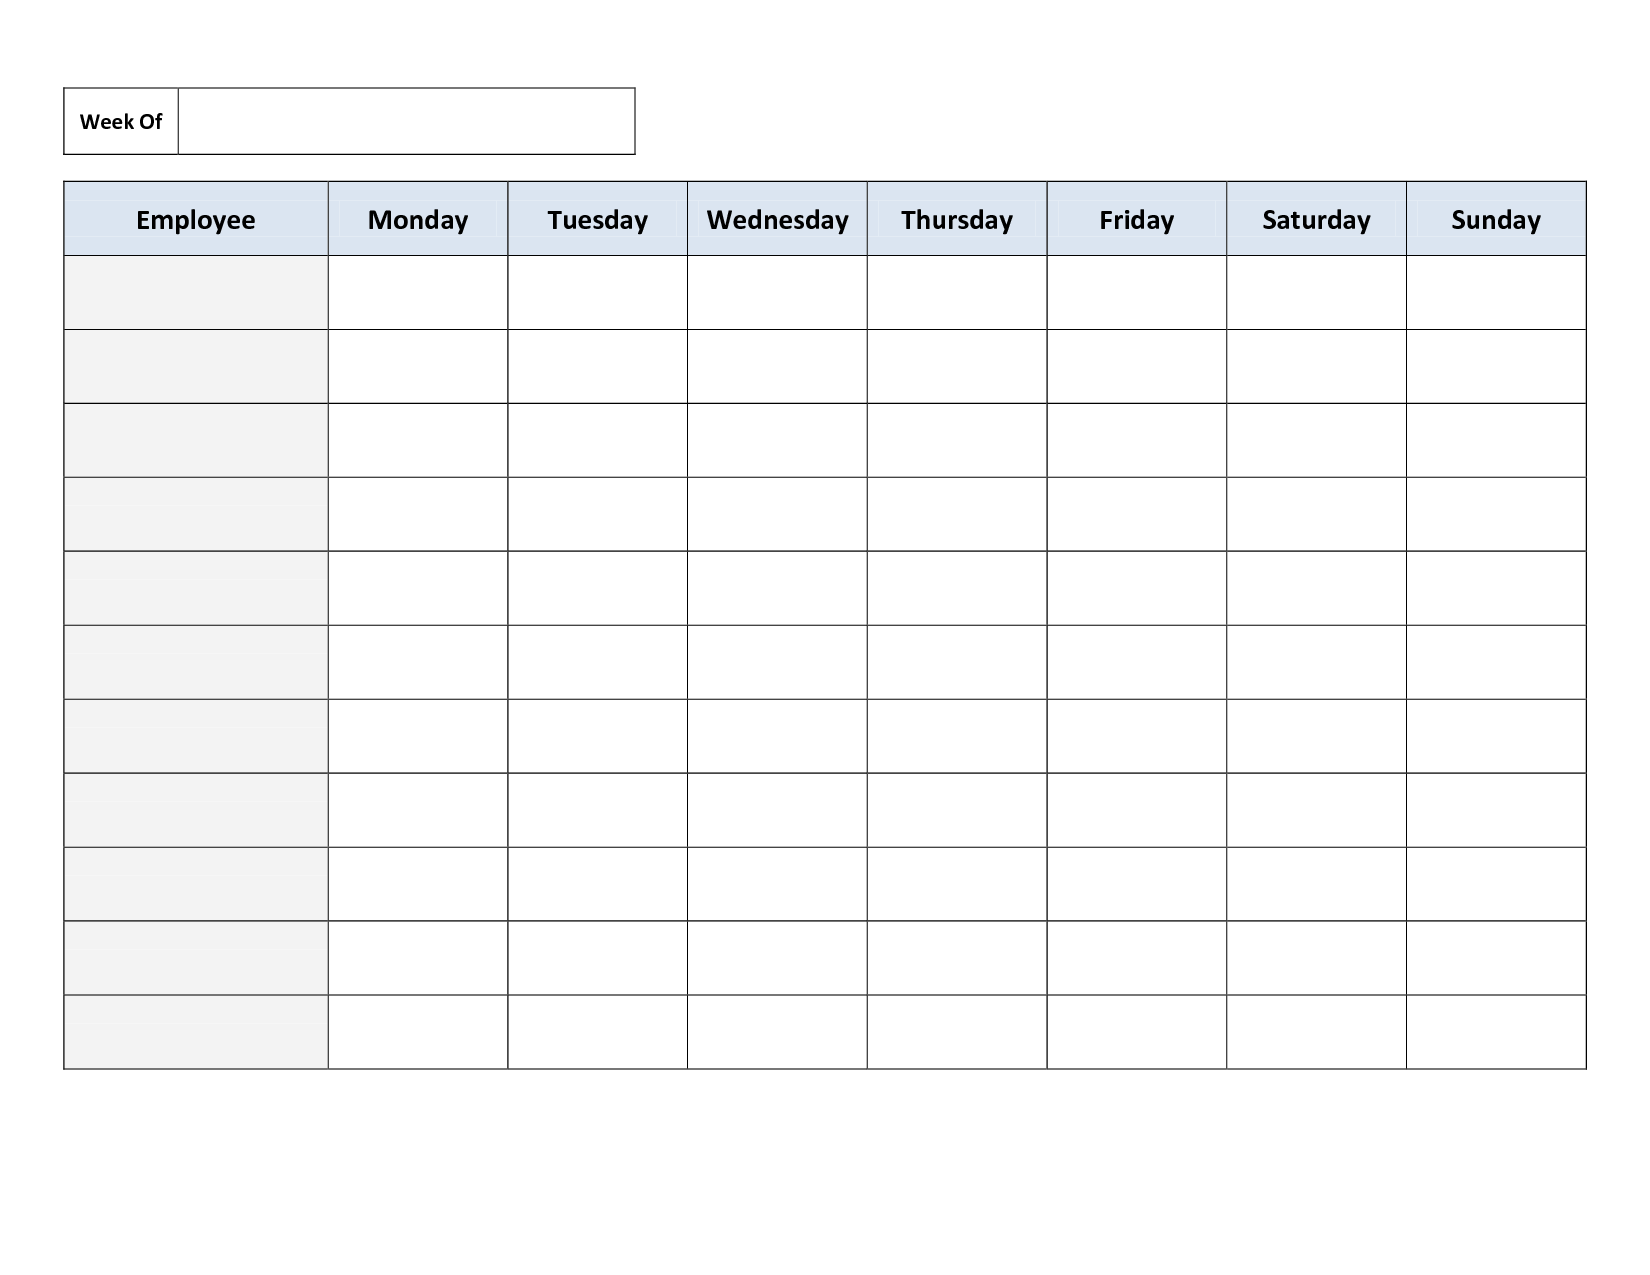 Free Printable Work Schedules | Weekly Employee Work Schedule